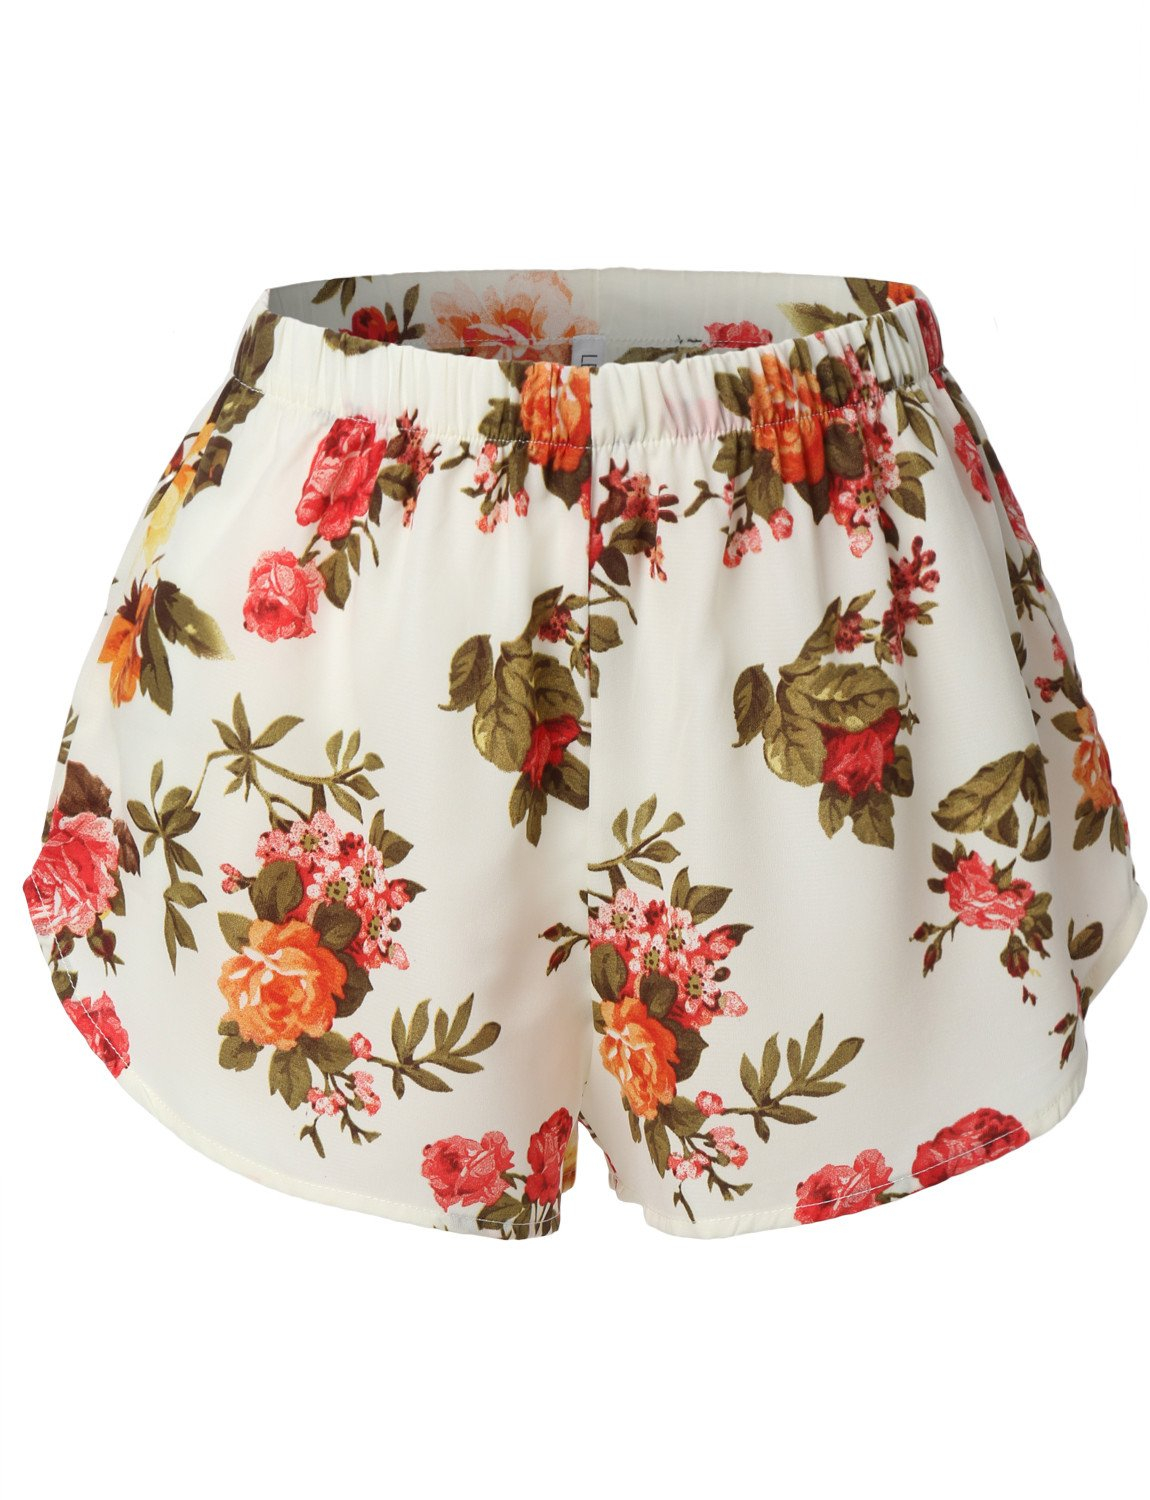 Image of Lightweight  Floral Print Loose Beach Short (CLEARANCE)